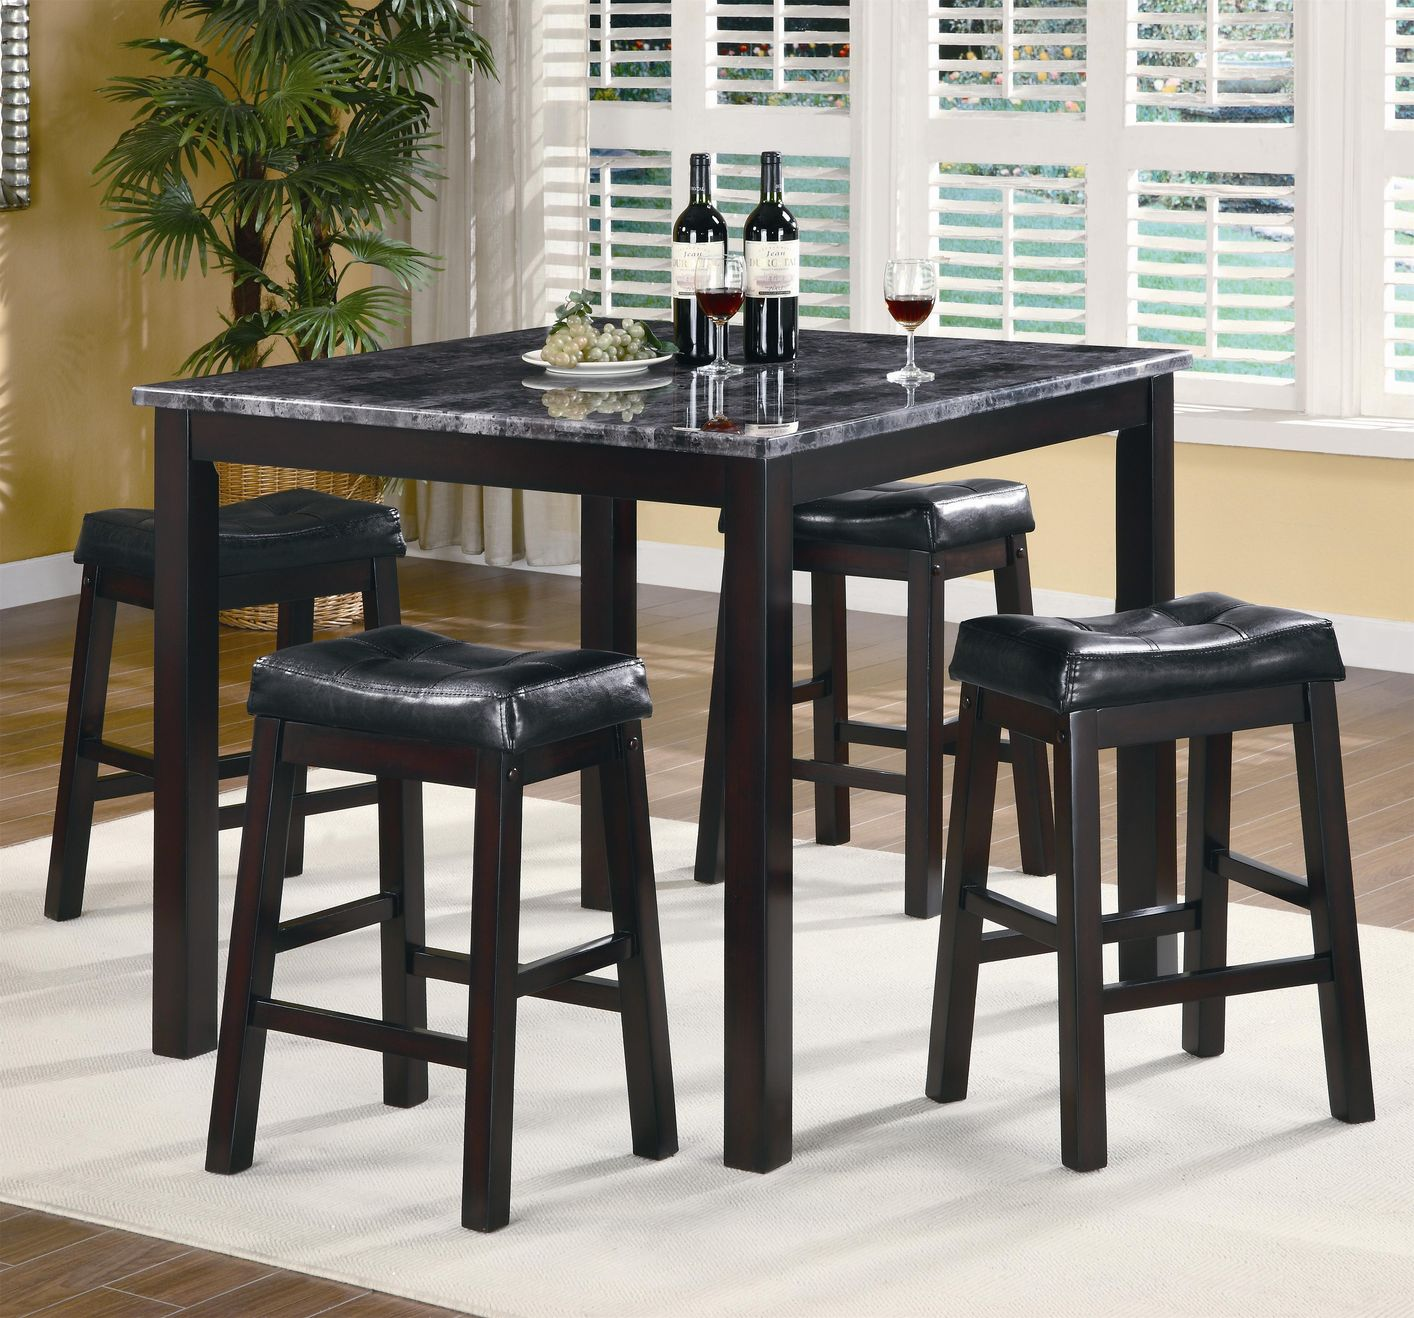 ... Sophia Cappuccino Wood And Marble Pub Table Set Steal A Sofa Sophia  Cappuccino Wood And Marble ...